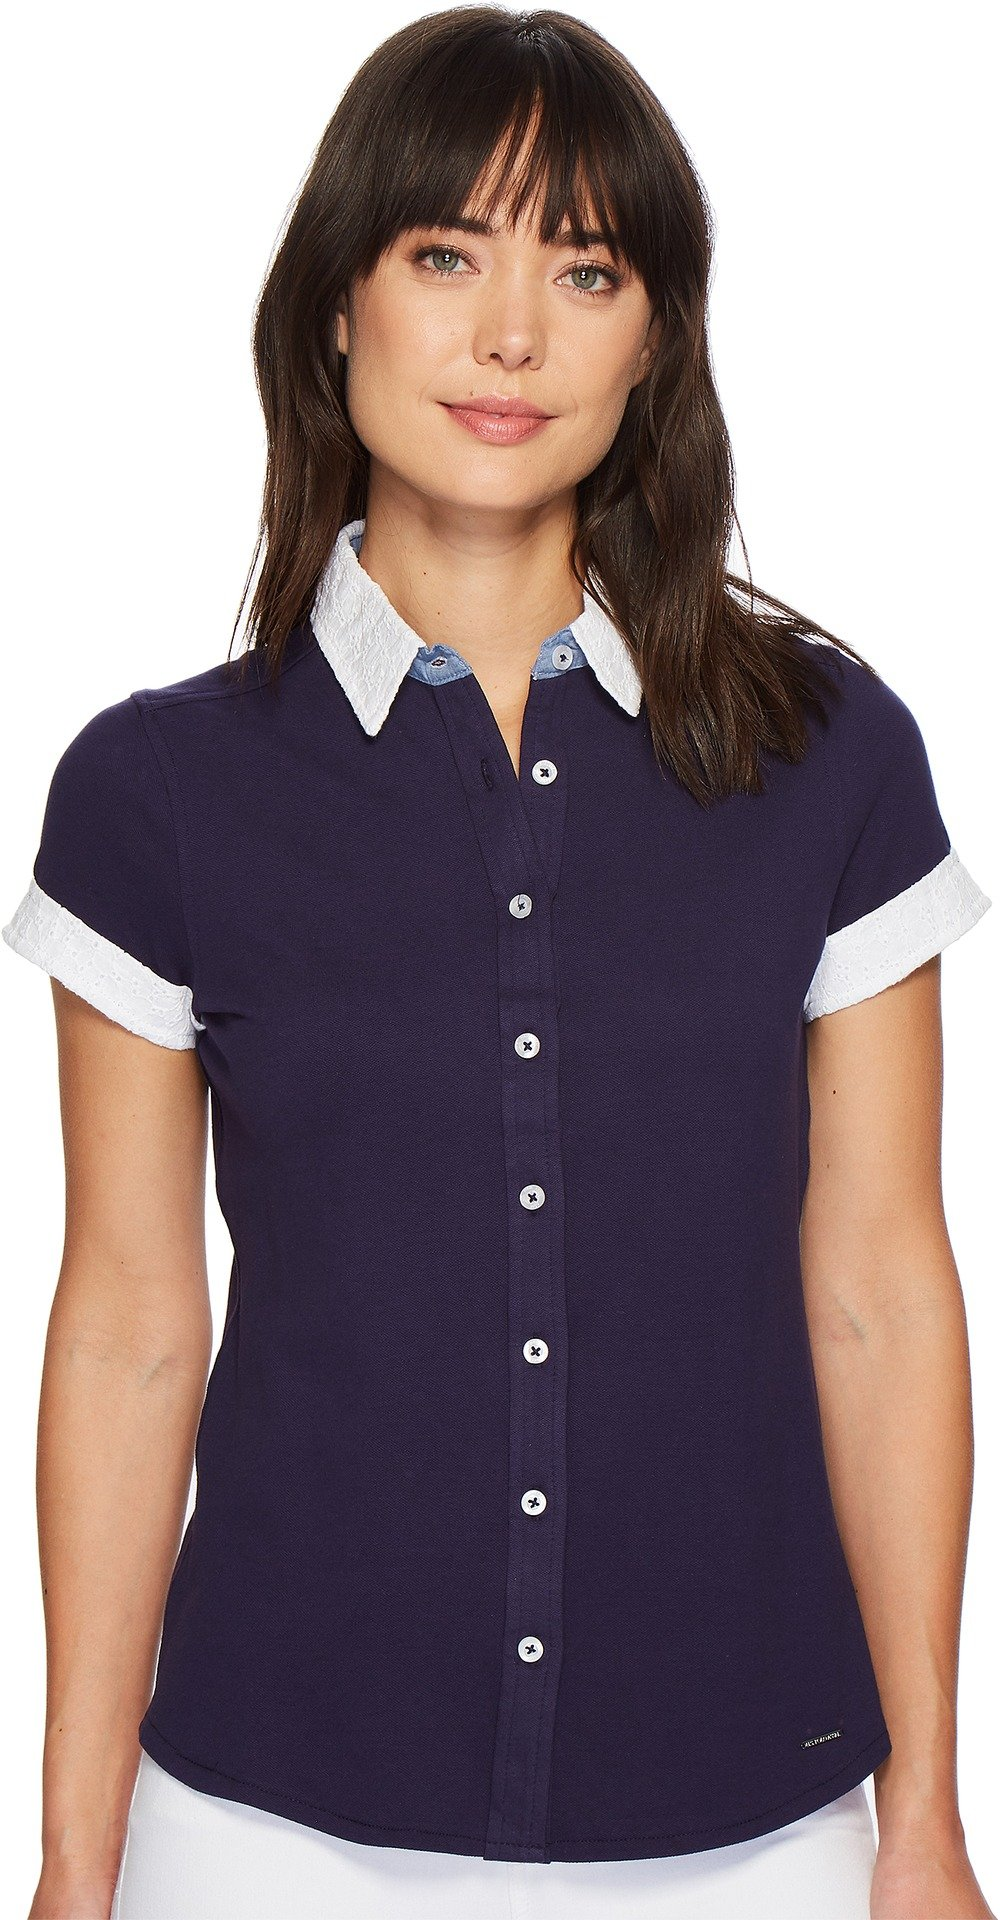 U.S. Polo Assn. Women's Short Sleeve Fashion Blouse, Evening Blue, L by U.S. Polo Assn.